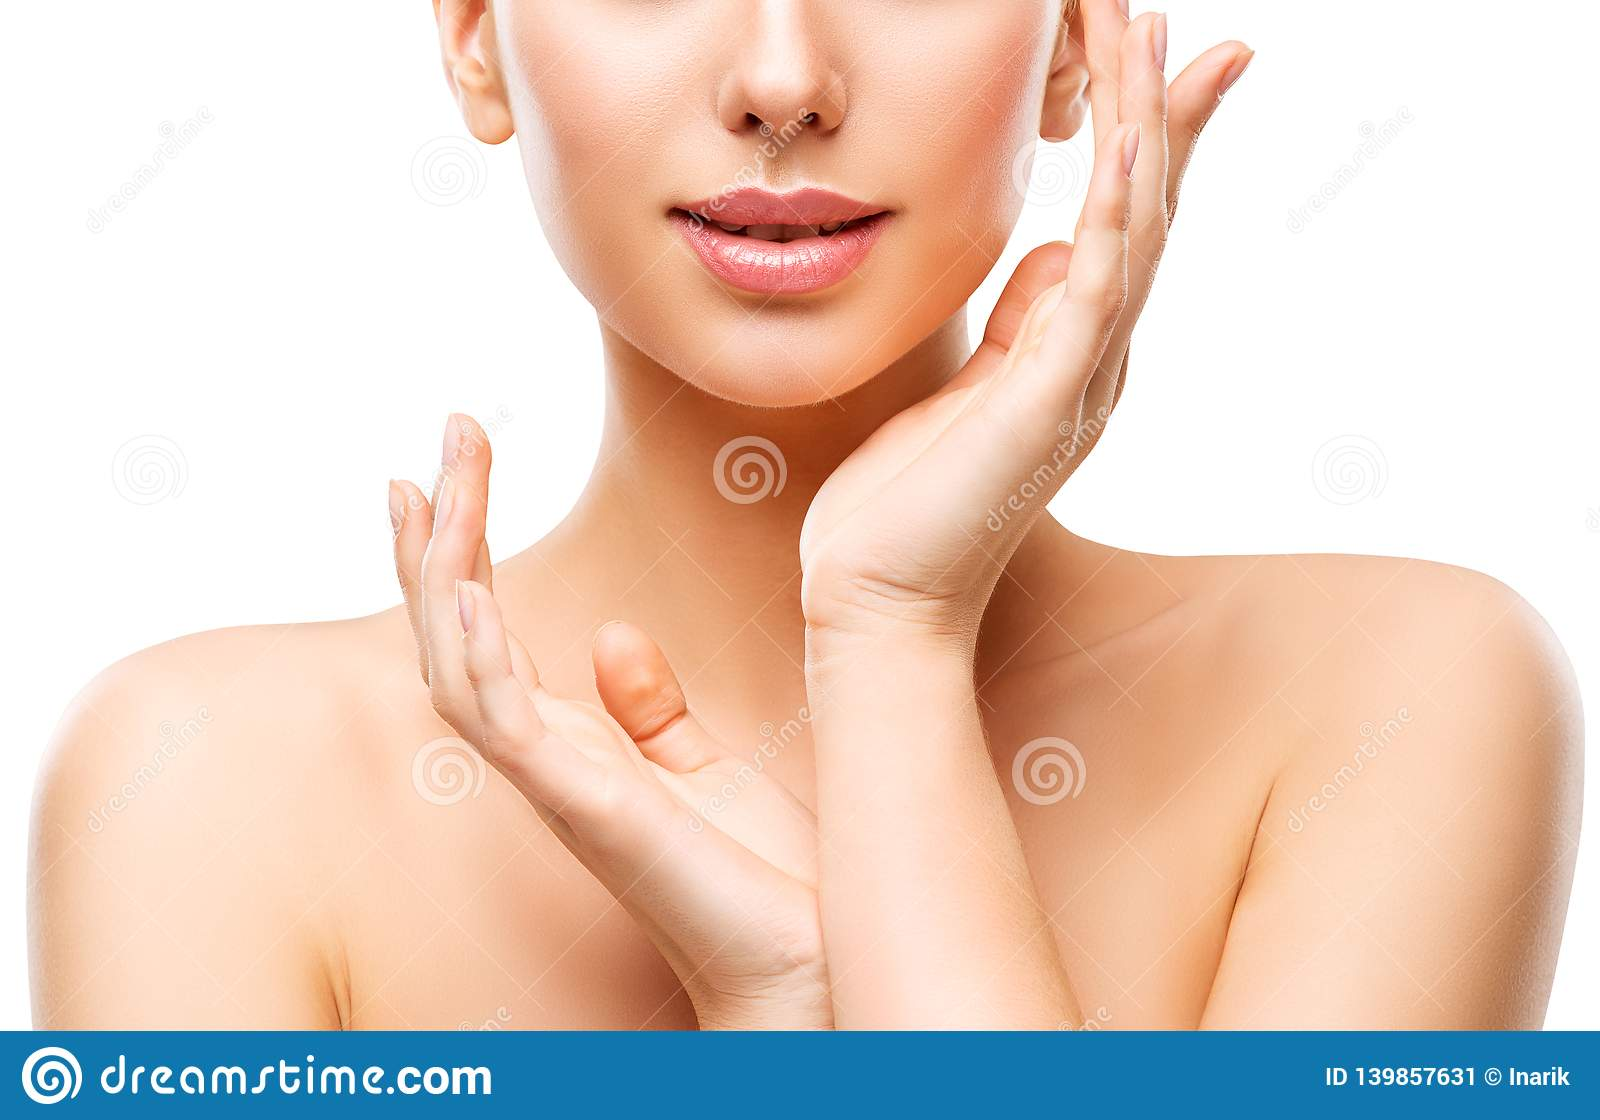 Beauty Natural Skin Care, Woman Touching Face By Hand, Young Girl on White